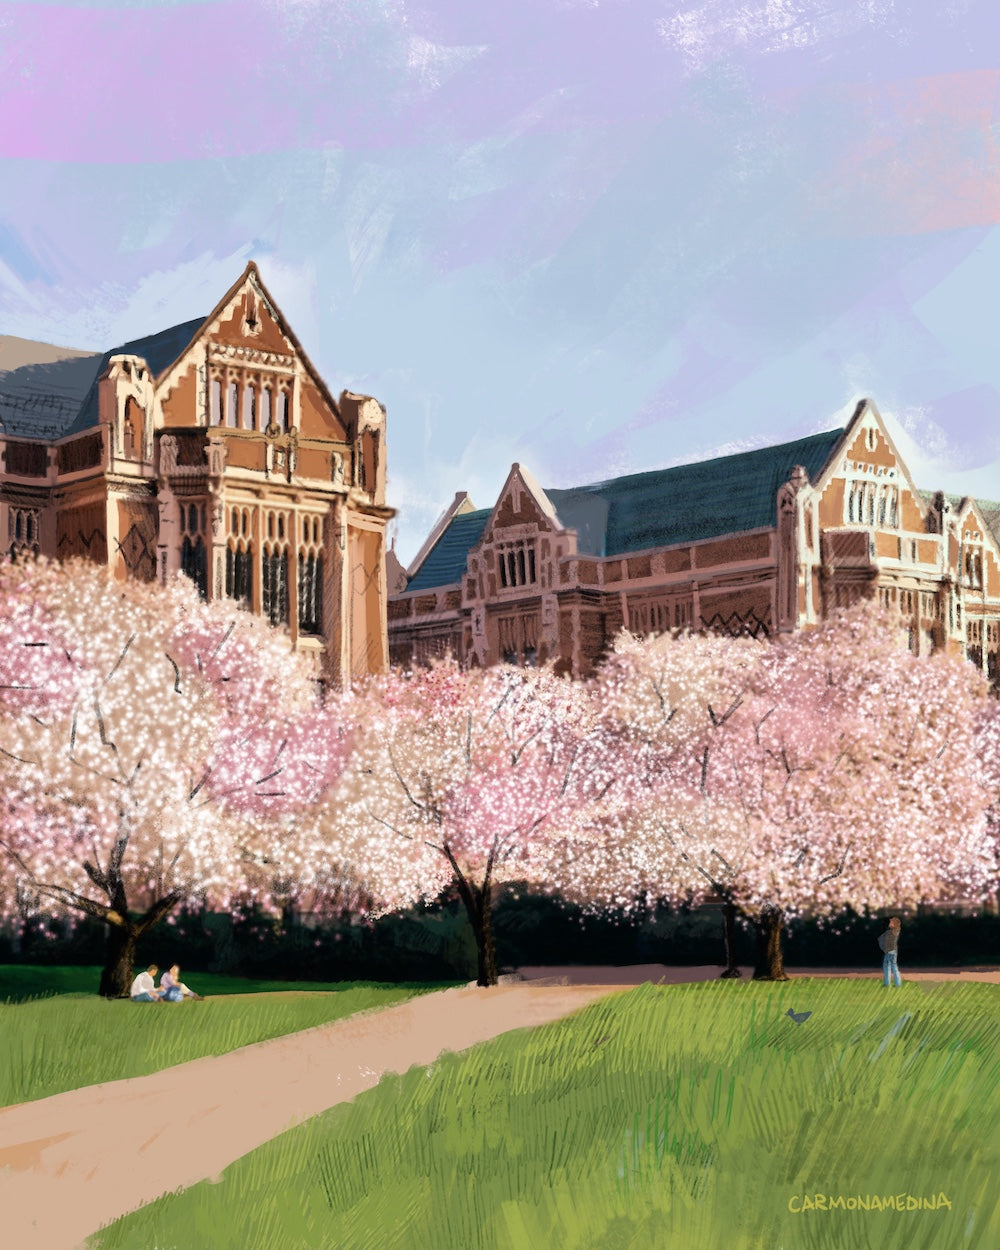 University of Washington Quad